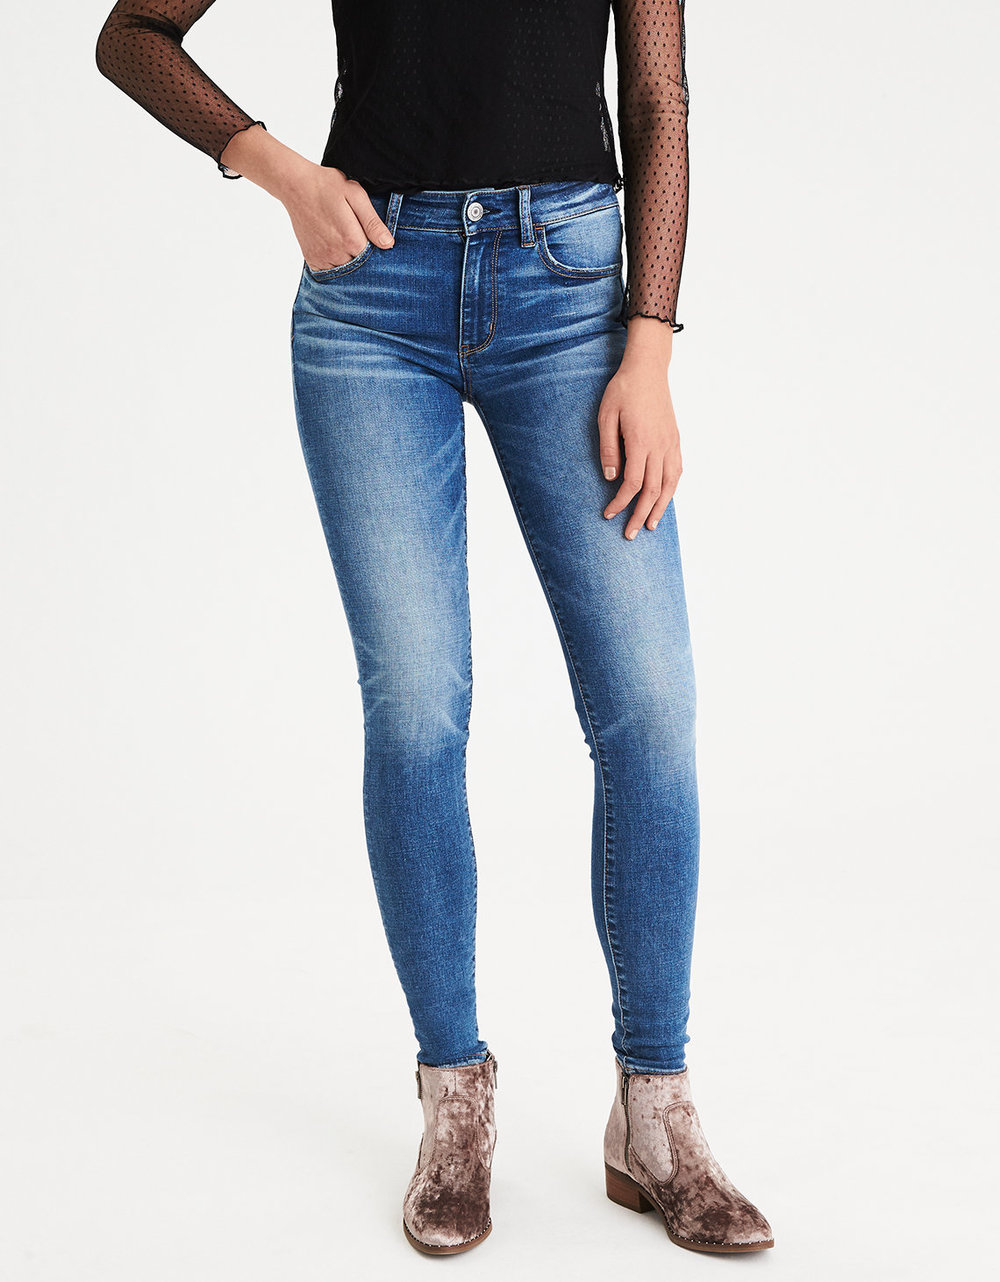 AE DENIM X HI-RISE JEGGING. Available in multiple rises and washes. American Eagle Outfitters. Was: $49. Now: $37.